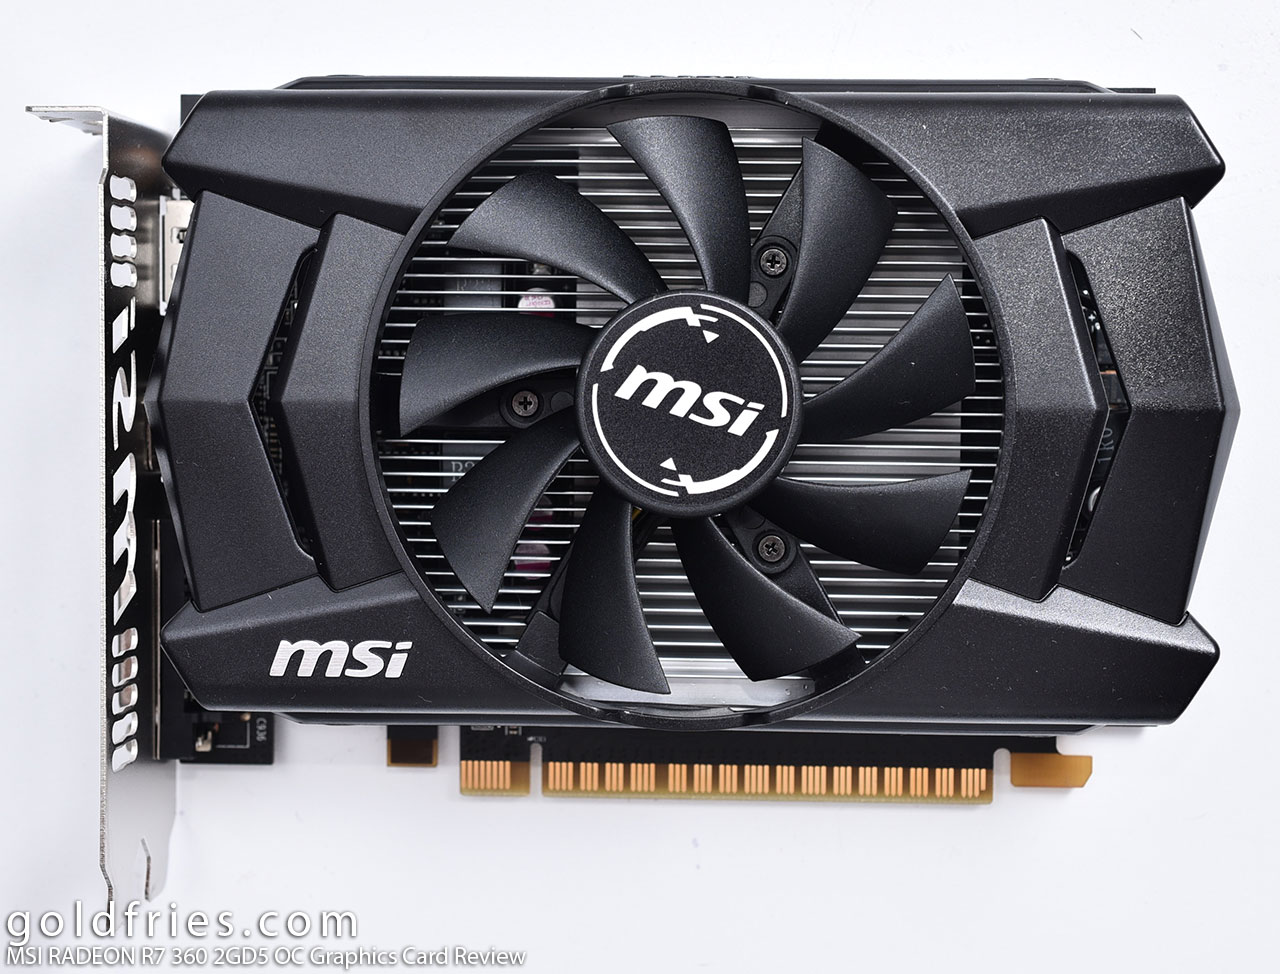 MSI RADEON R7 360 2GD5 OC Graphics Card Review